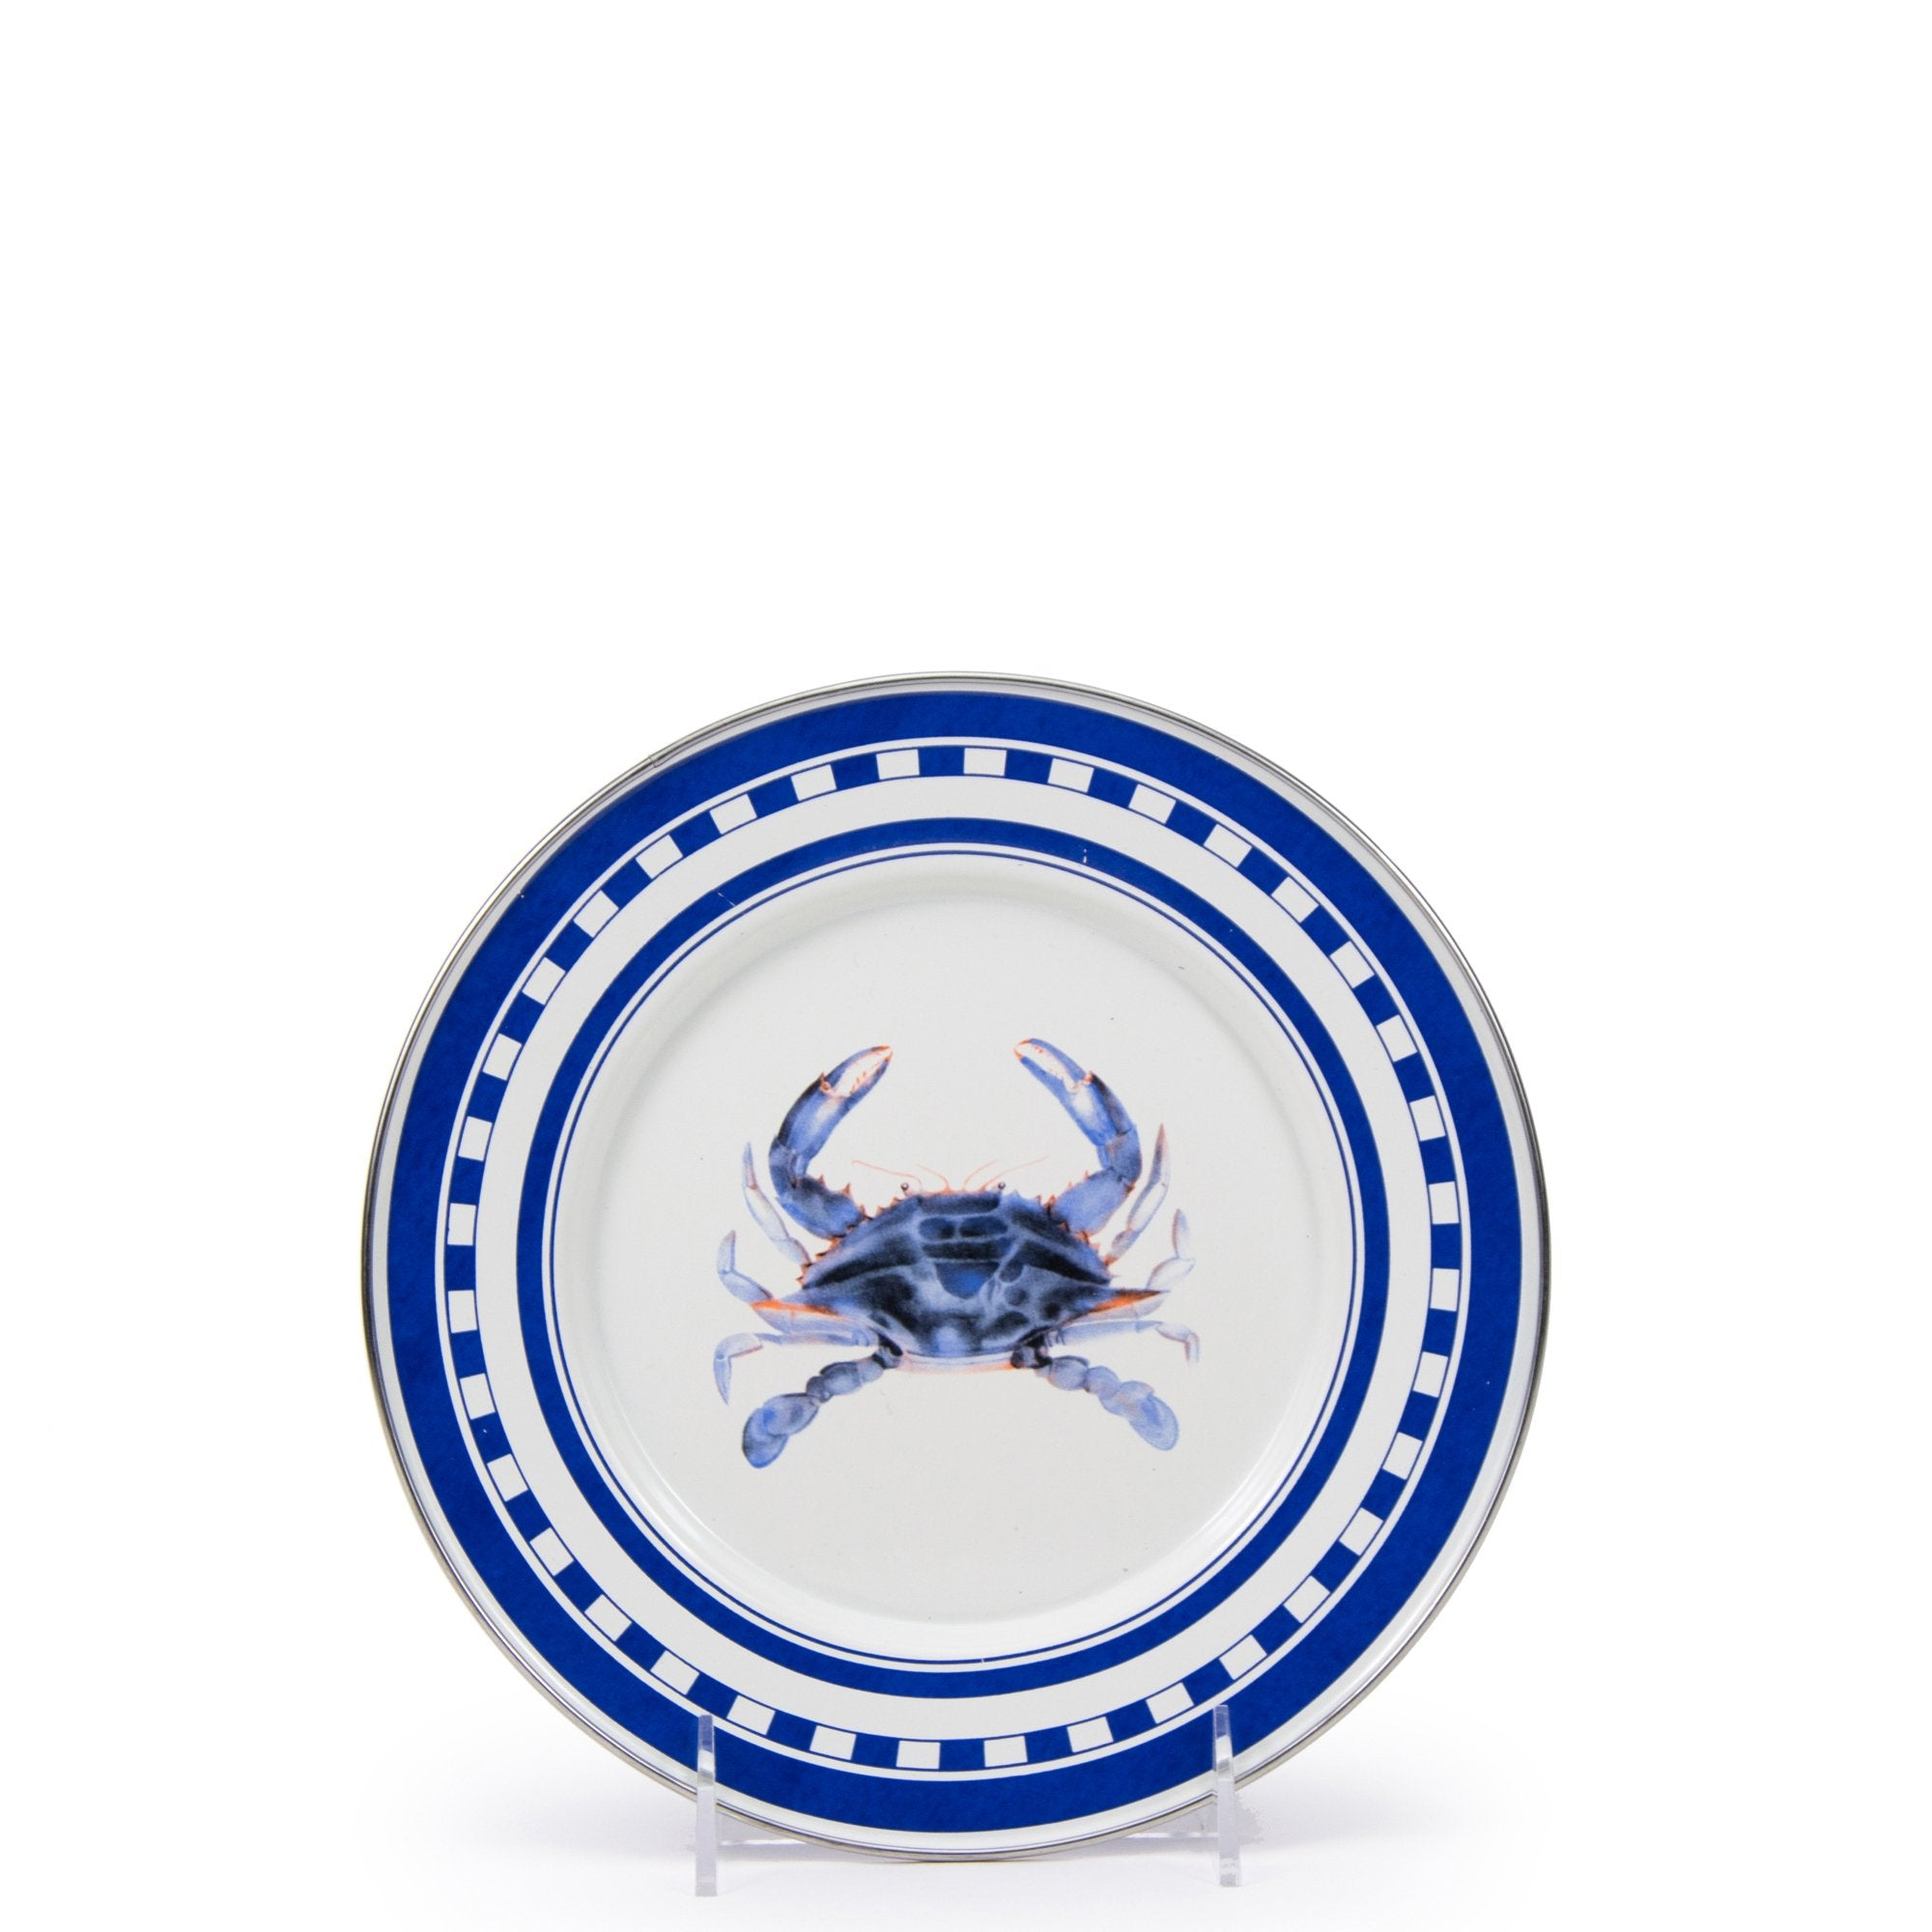 SE11S4 - Set of 4 Blue Crab Sandwich Plates Product 1